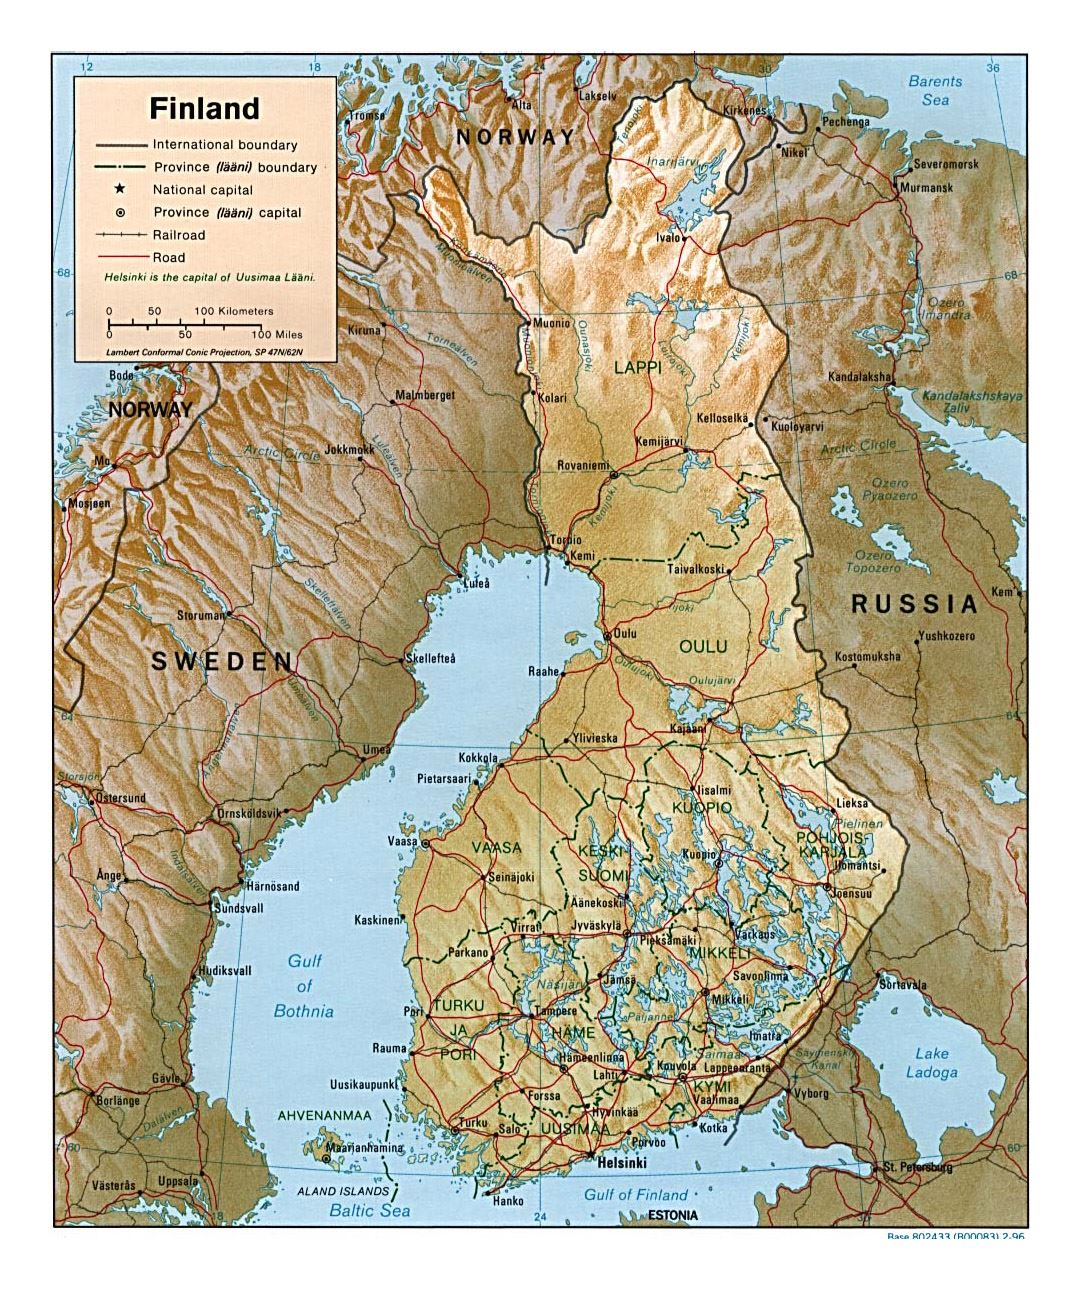 Detailed political and administrative map of Finland with relief, roads and cities - 1996